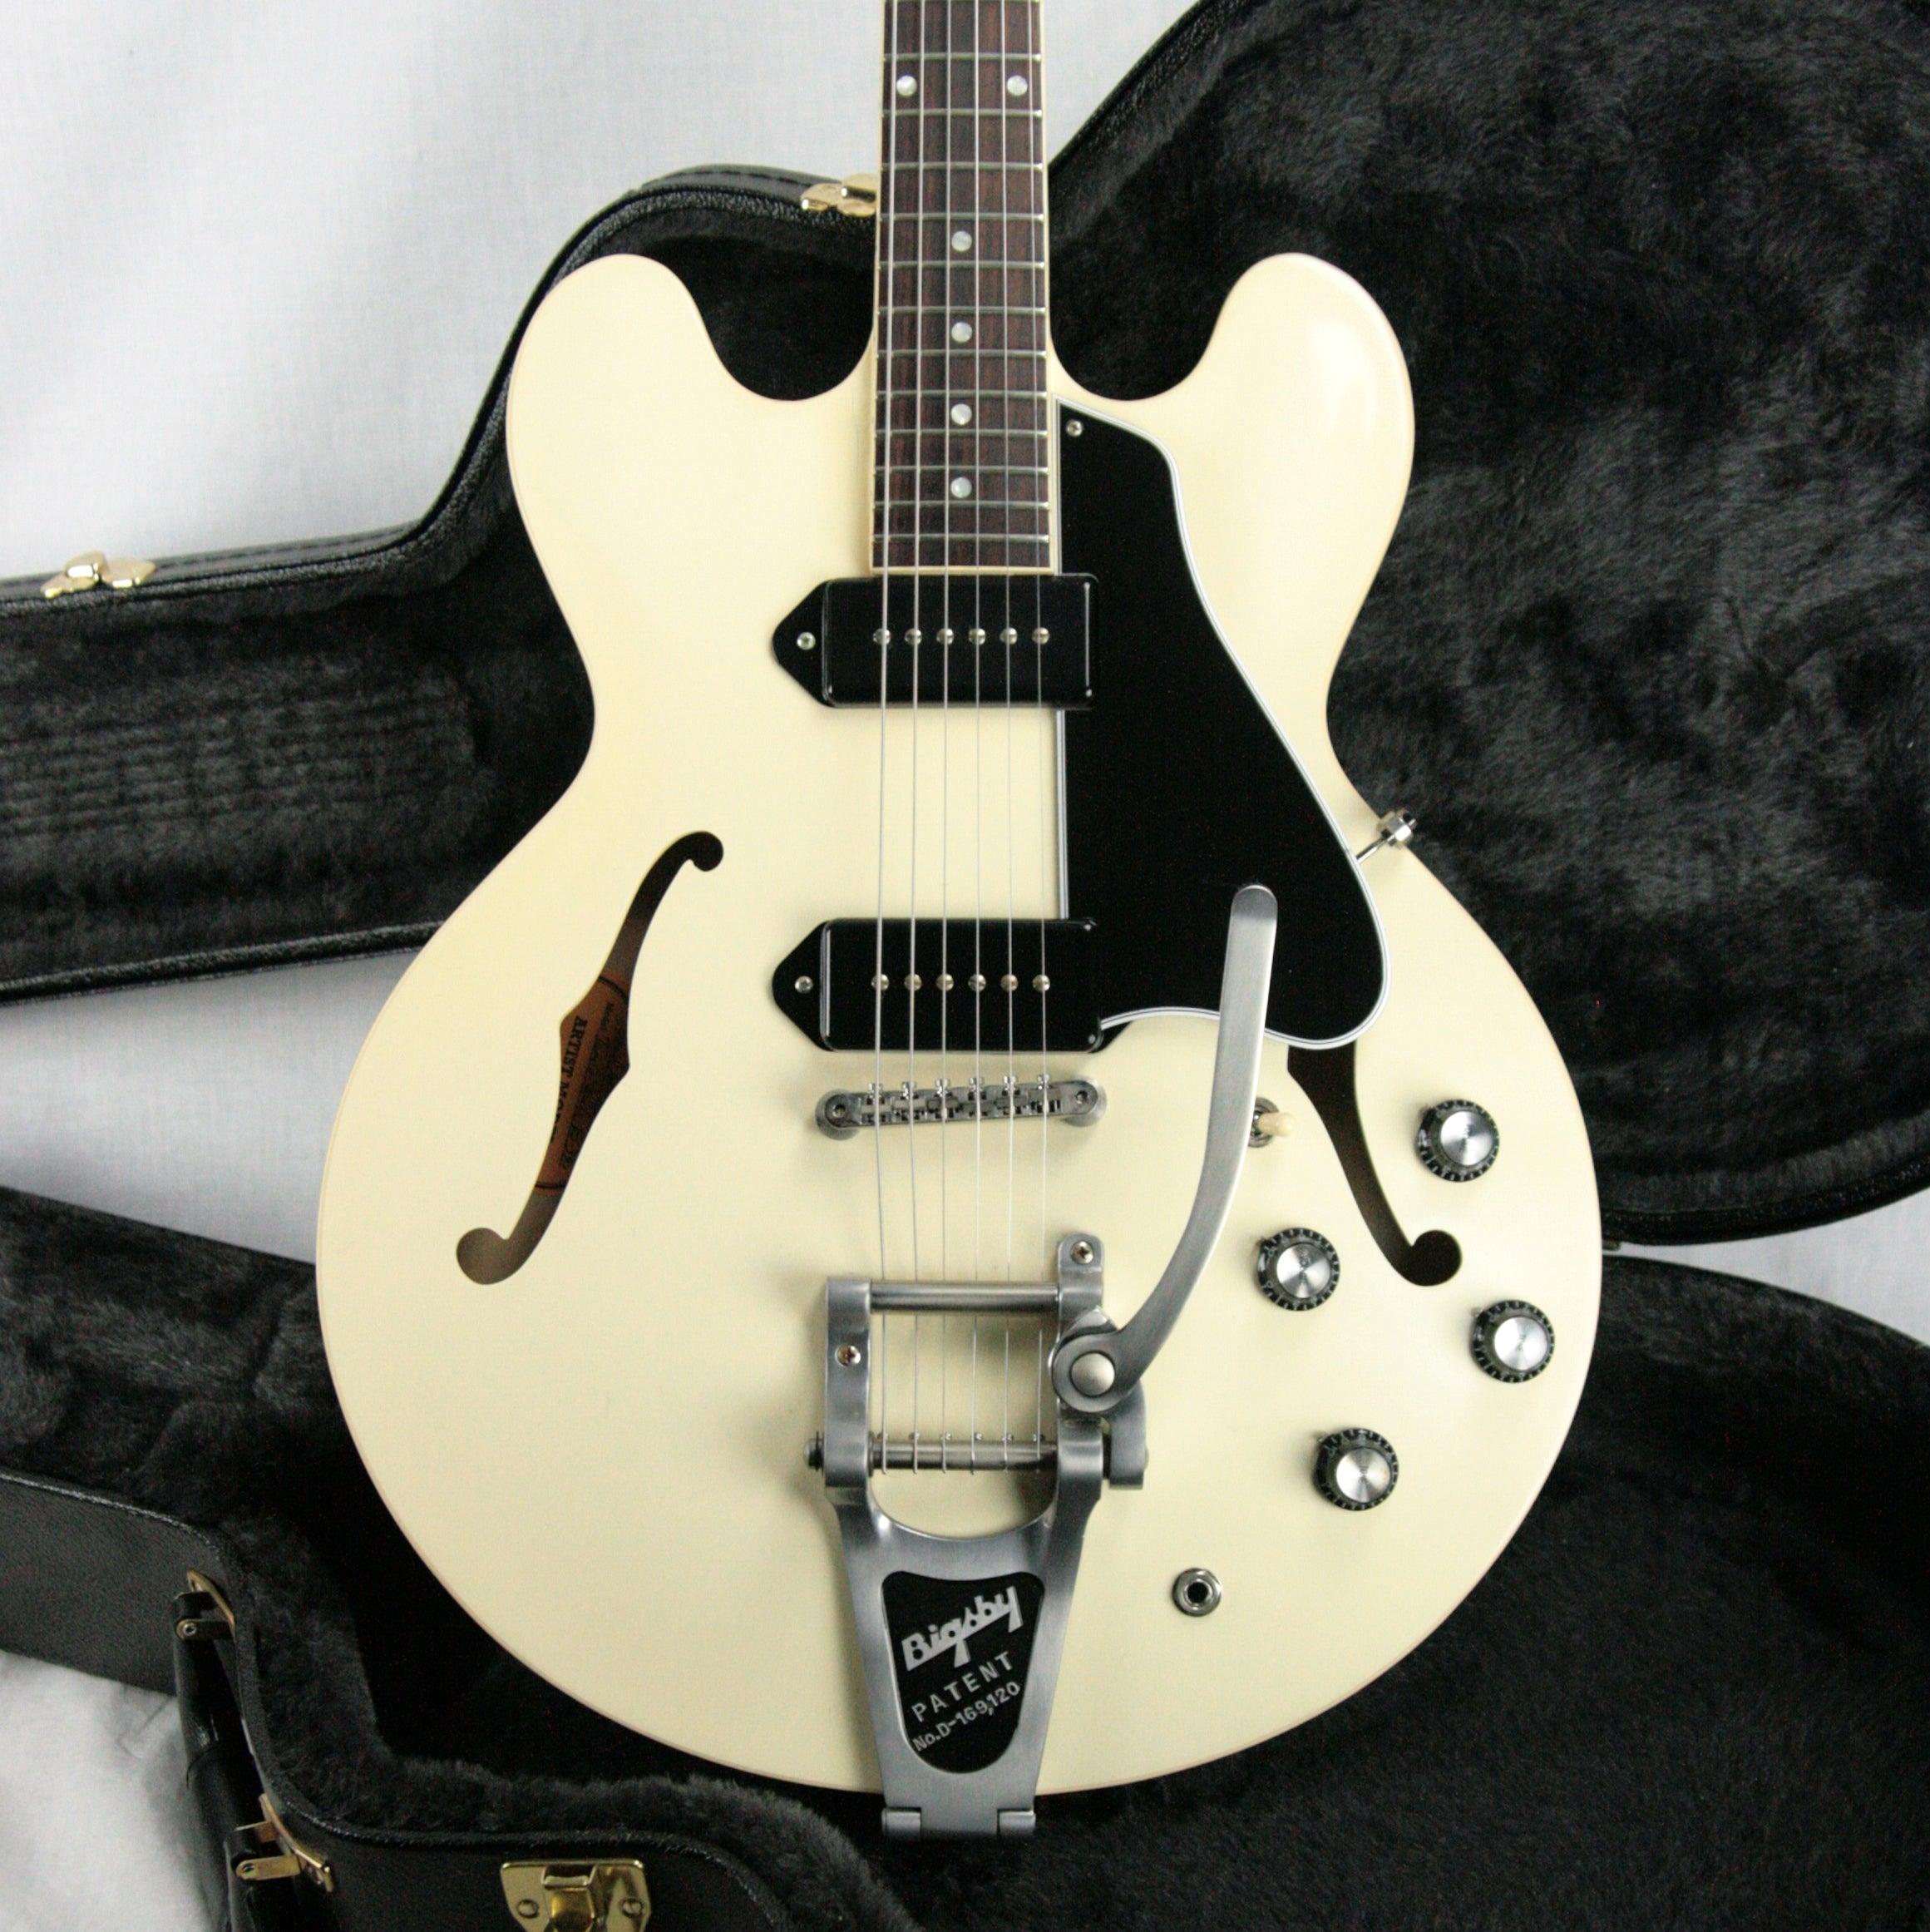 1959 Gibson Memphis ES-330 Tamio Okuda Classic White! P90 Bigsby Limited Edition